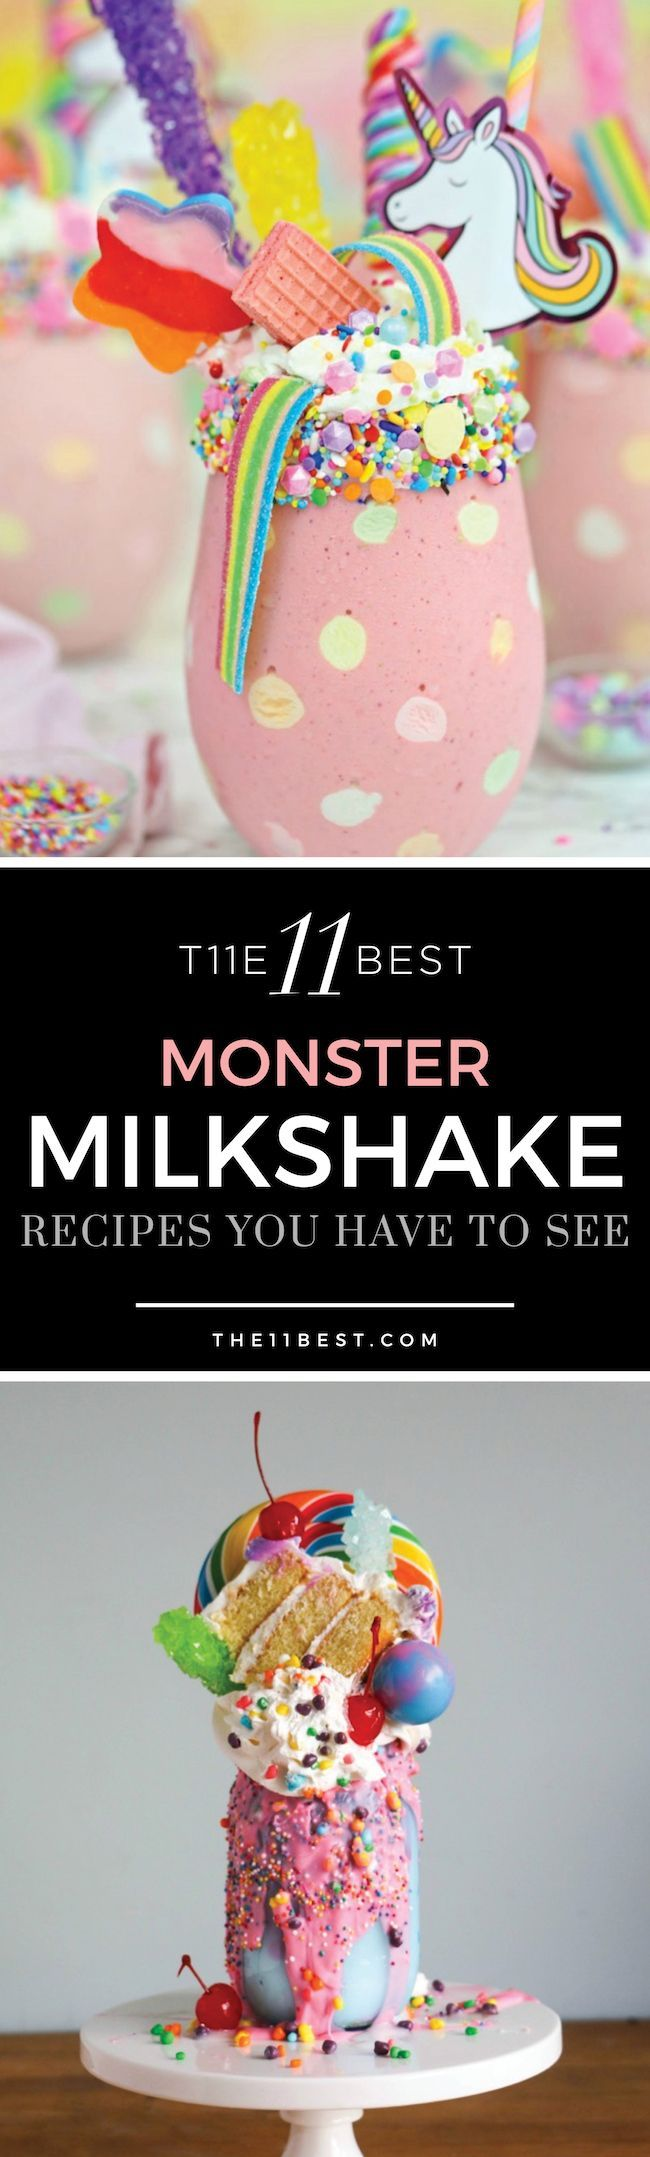 INSANE Monster Milkshake recipes you have to see to belive!